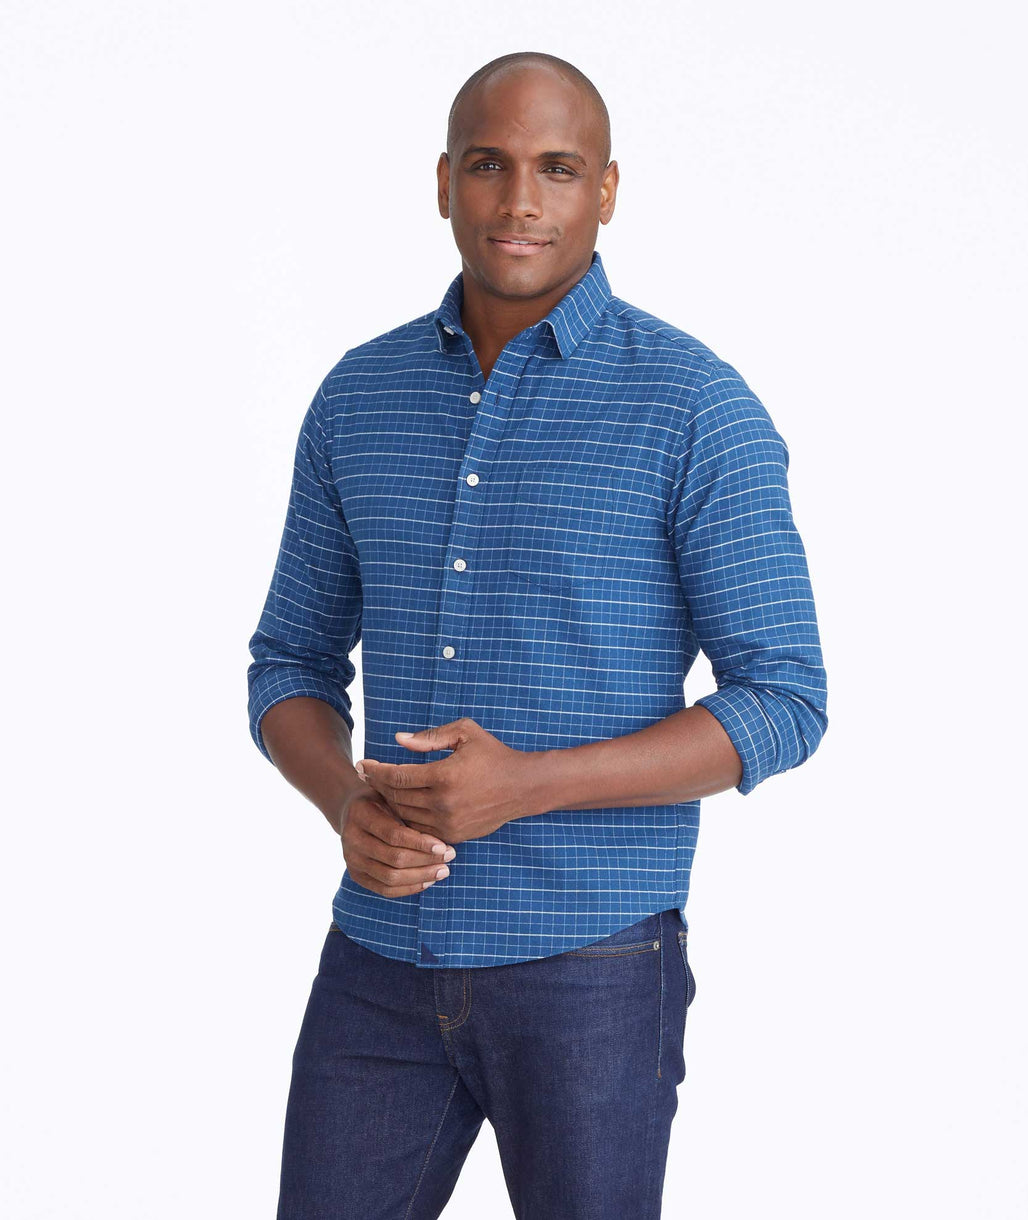 Model wearing a Blue Flannel Michelot Shirt